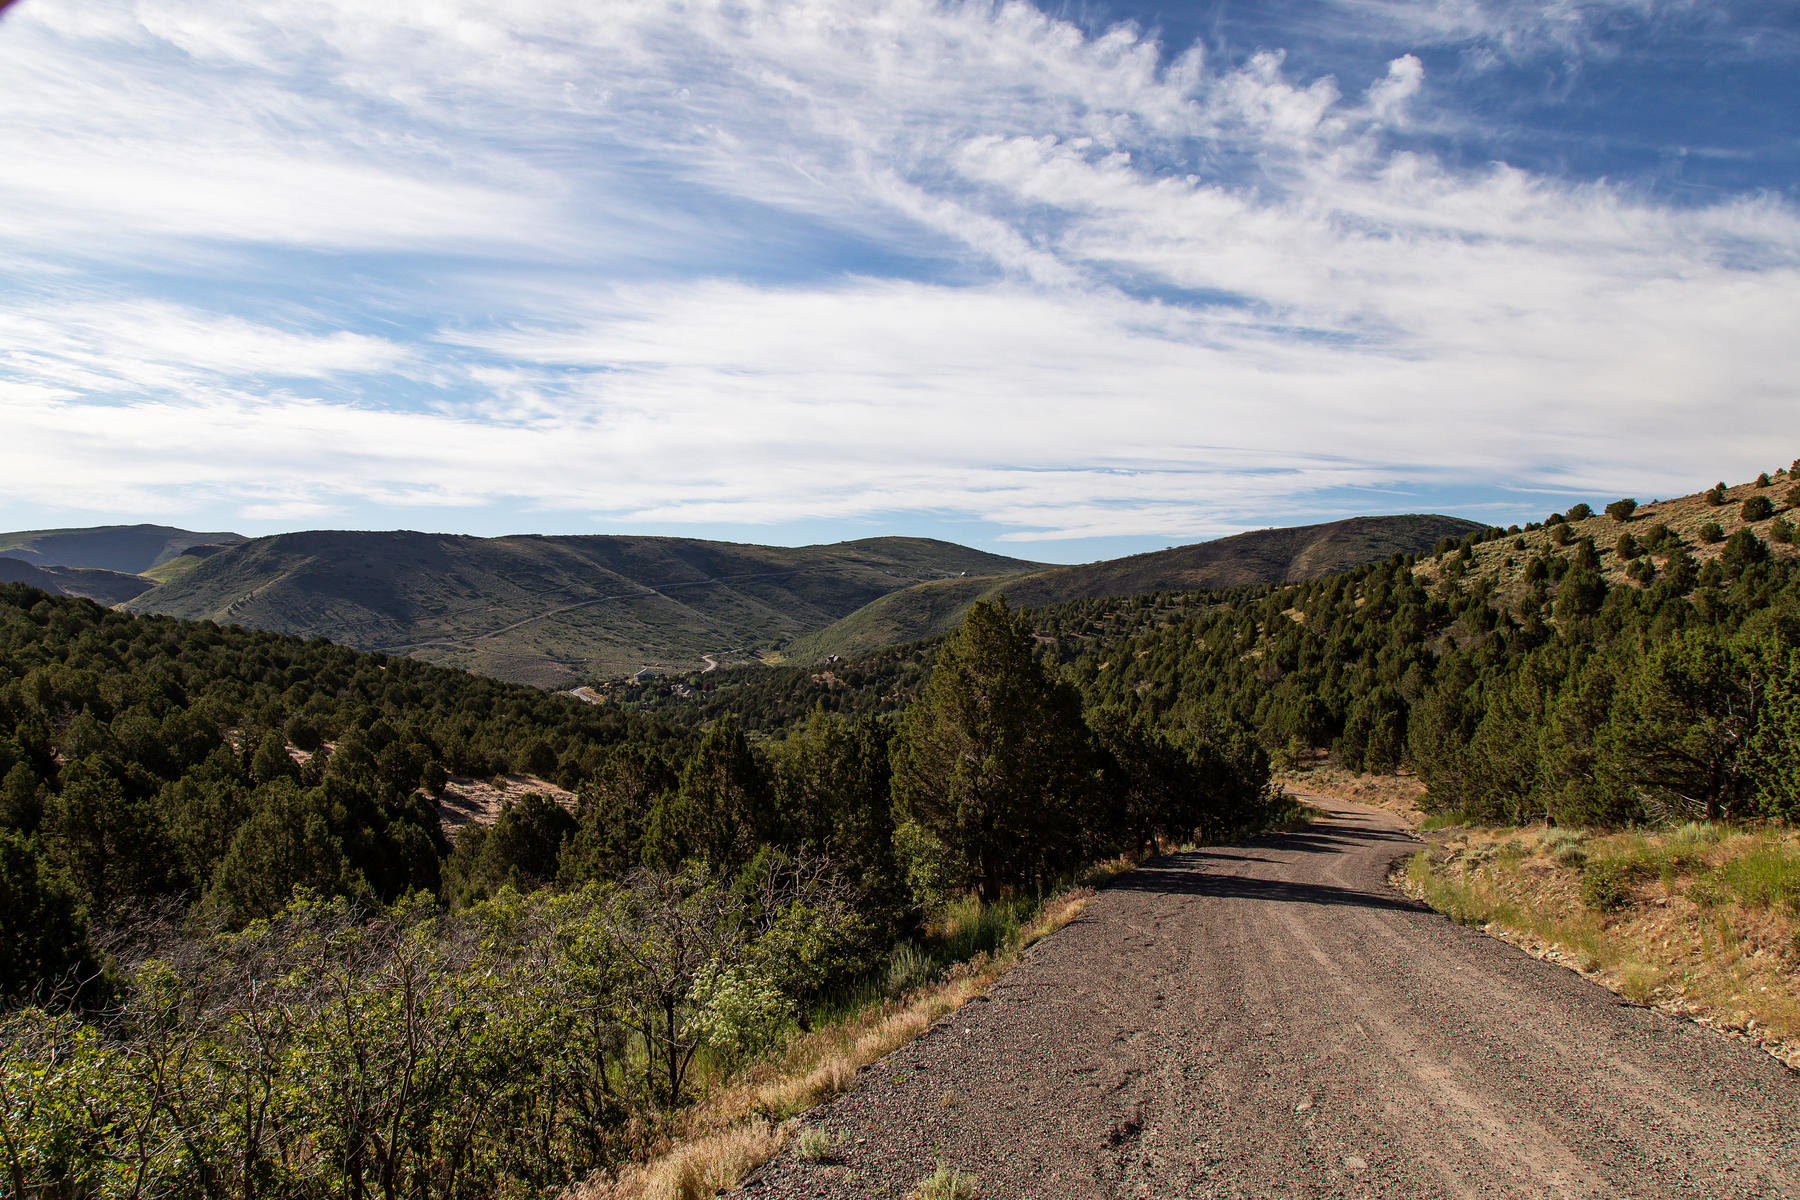 Land for Sale at Beautiful 10 Acre Parcel with Amazing Valley Views 15147 S Shaggy Mountain Road, Herriman, Utah 84096 United States